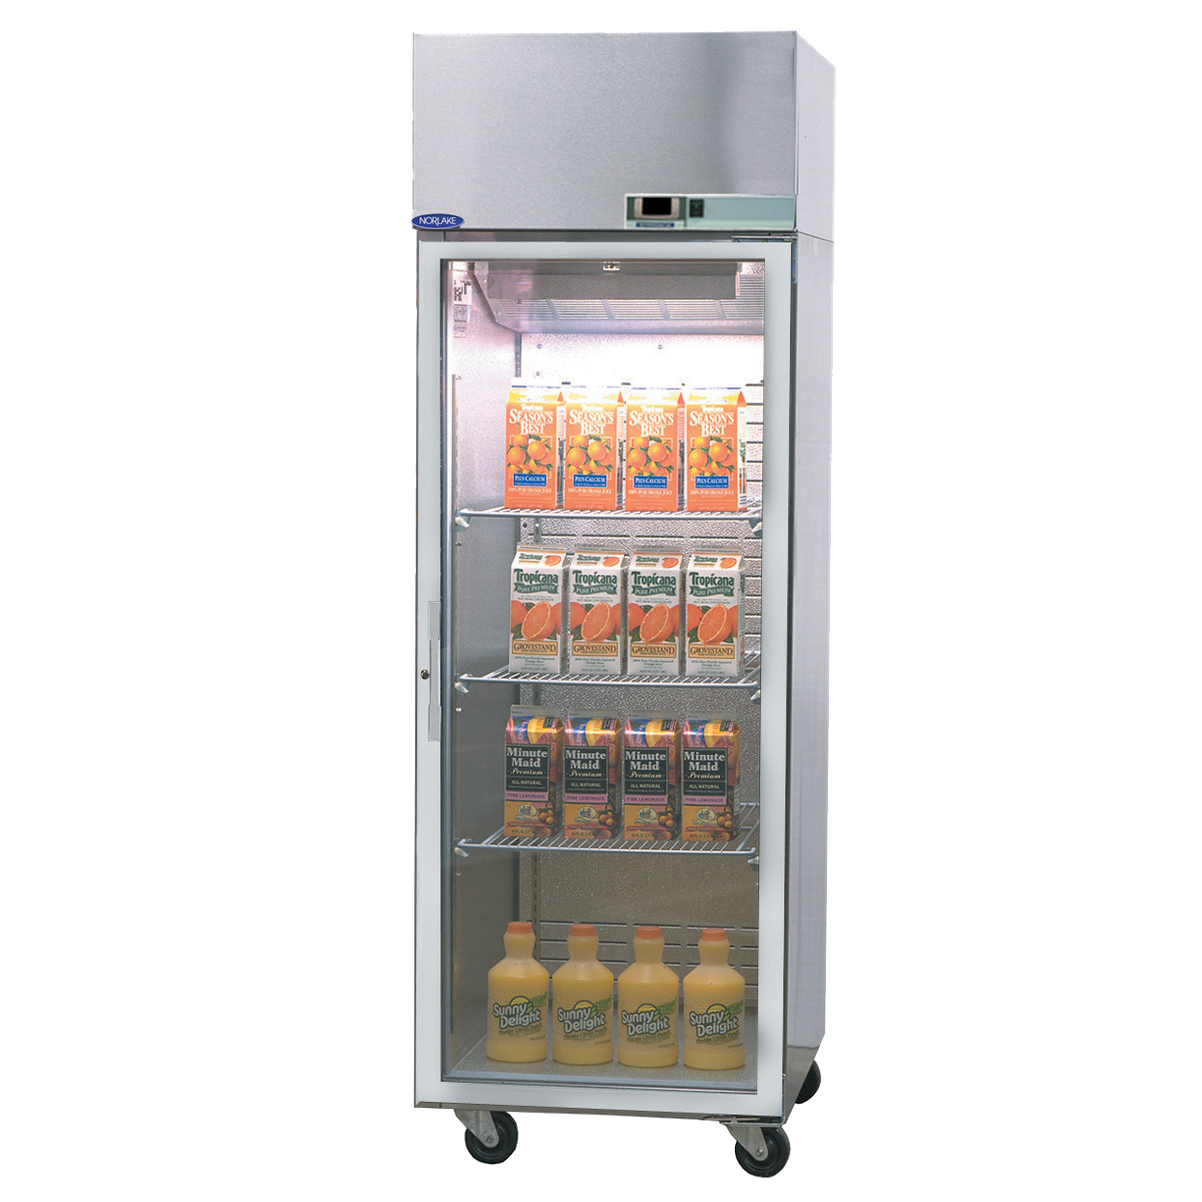 Nor-Lake NR241SSG/0X refrigerator, reach-in